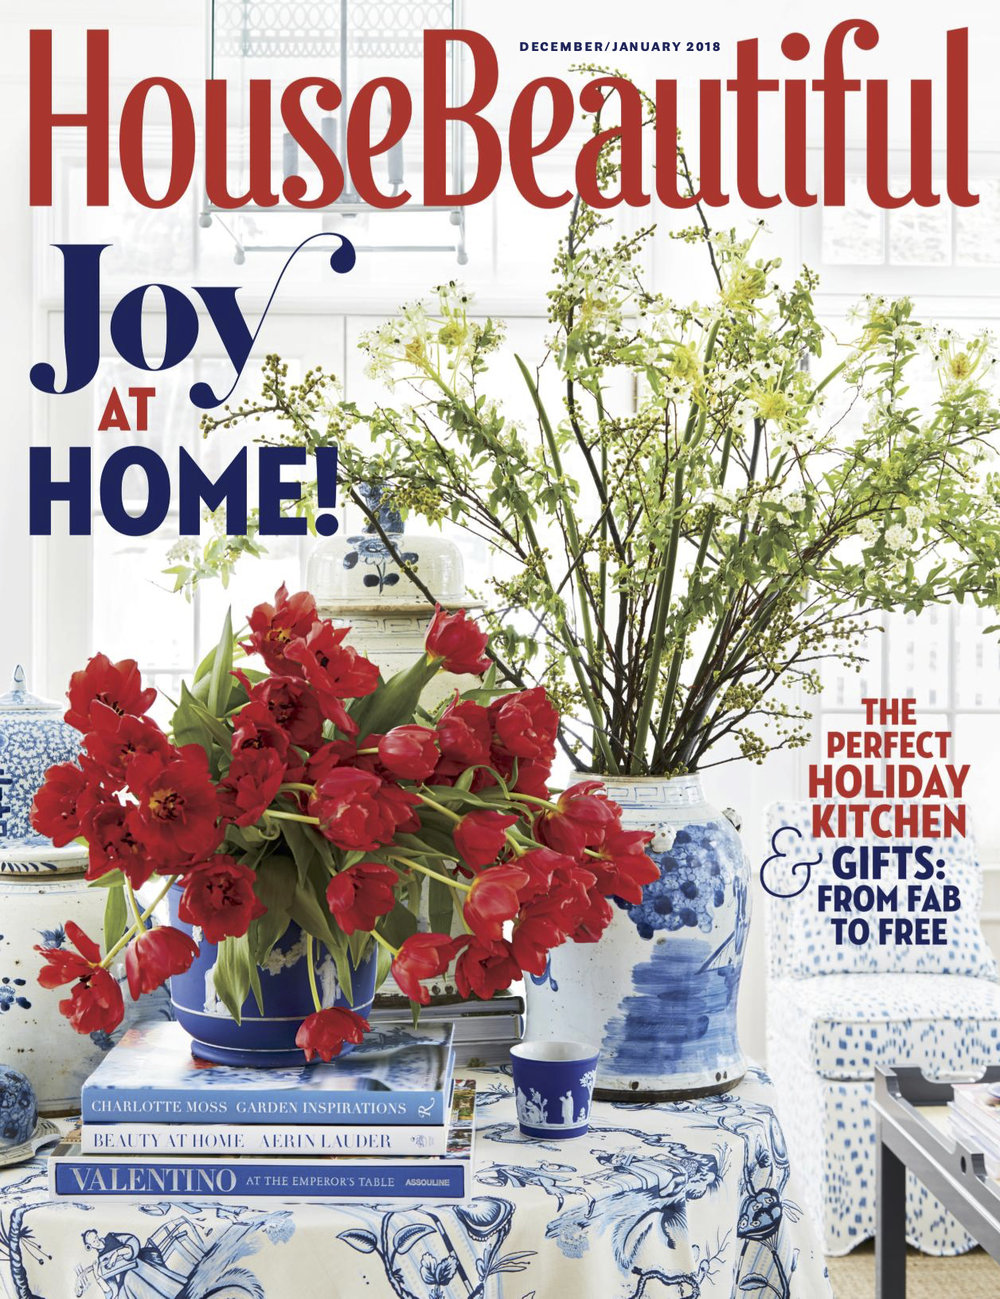 House Beautiful, Dec / Jan 2016